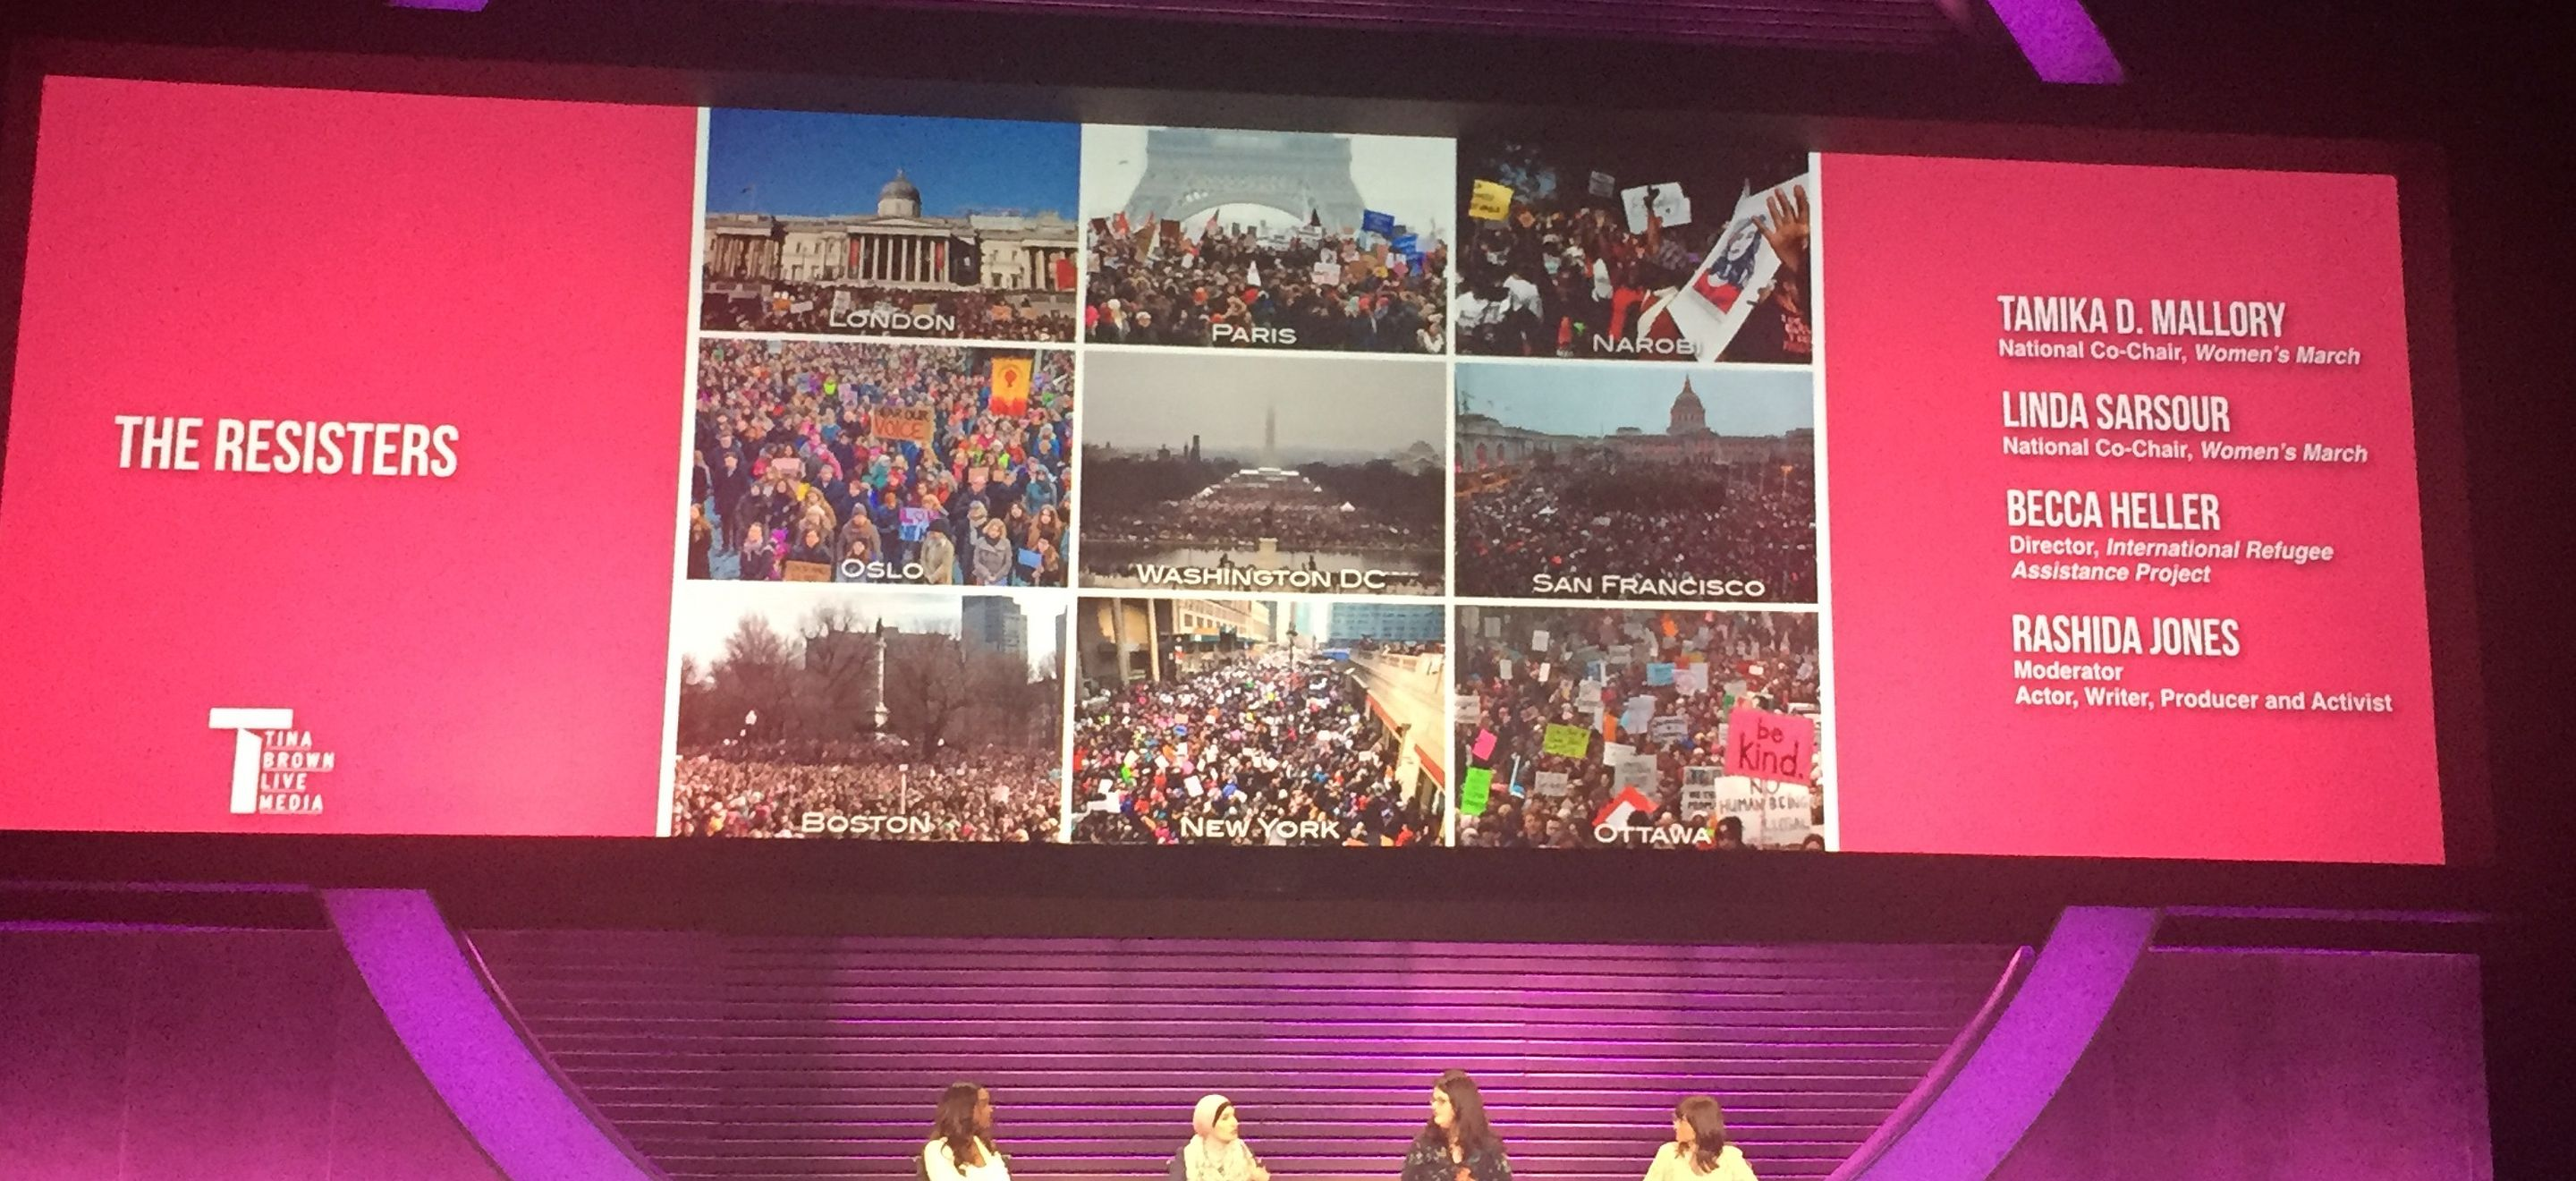 """Tamika D. Mallory, Linda Sarsour, Becca Heller, and Rashida Jones are seated in chairs on a stage. Behind them is a large screen displaying their names, images of protests across the world, and the words """"THE RESISTERS."""""""